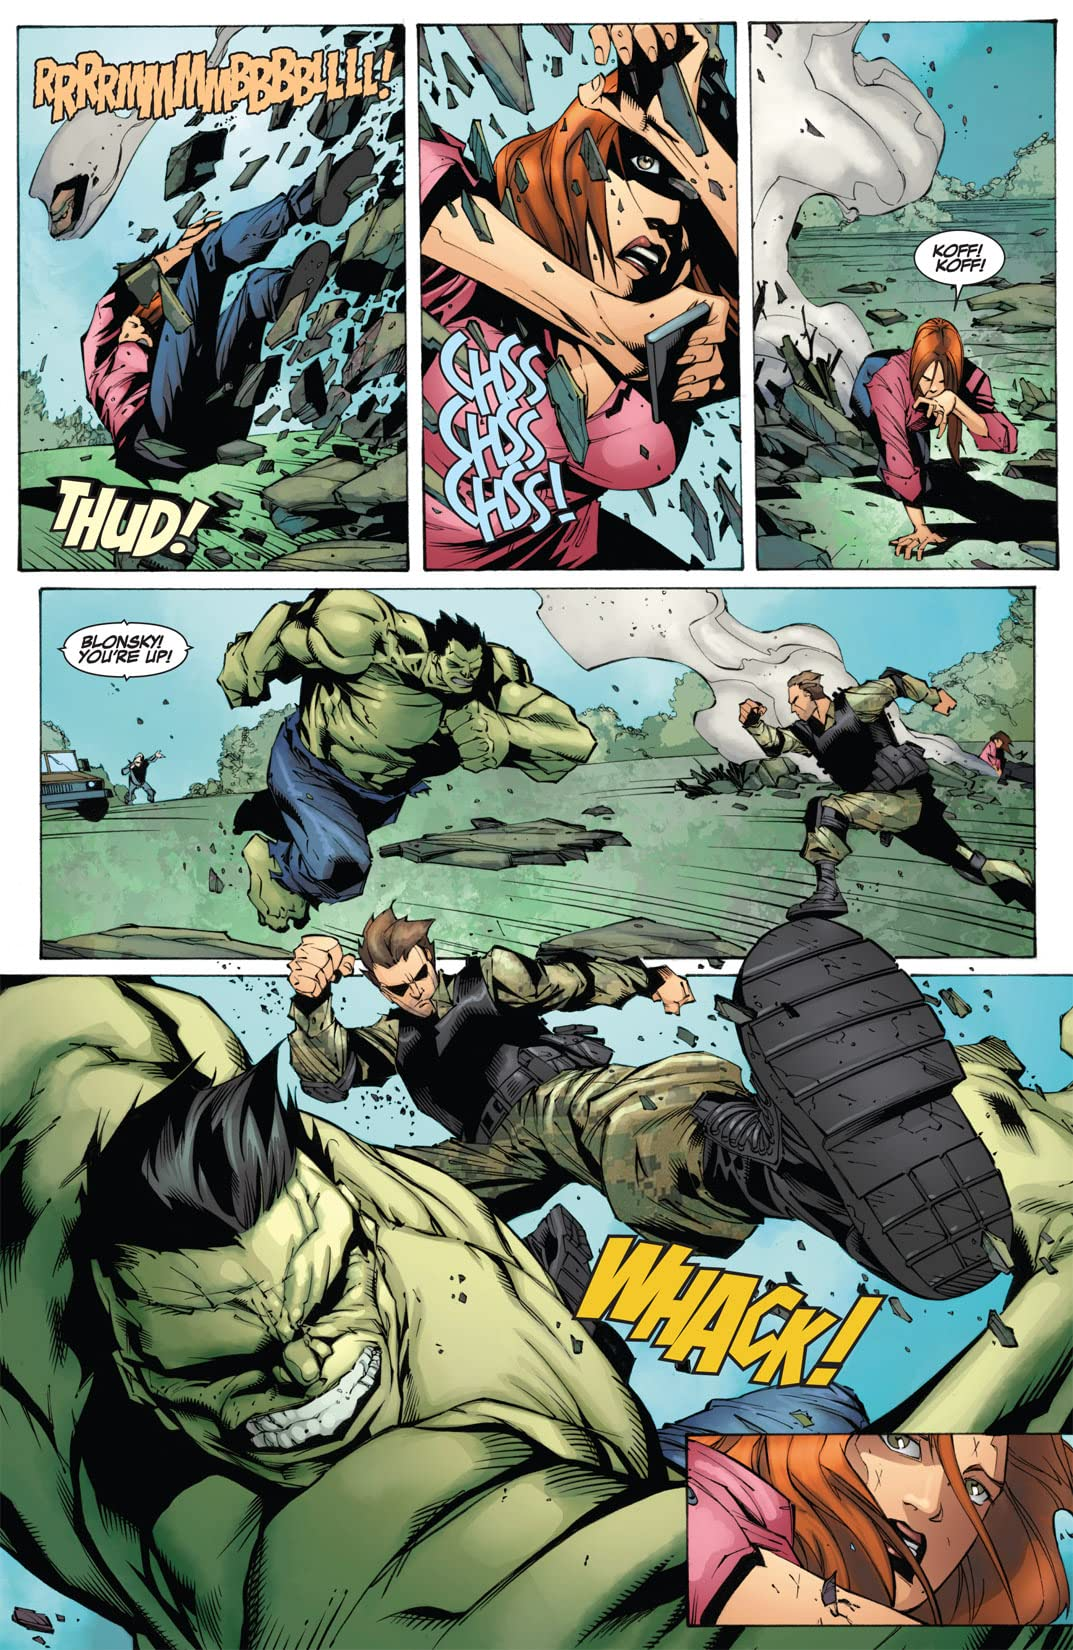 Marvel's The Avengers Prelude: Fury's Big Week #5 (of 8)